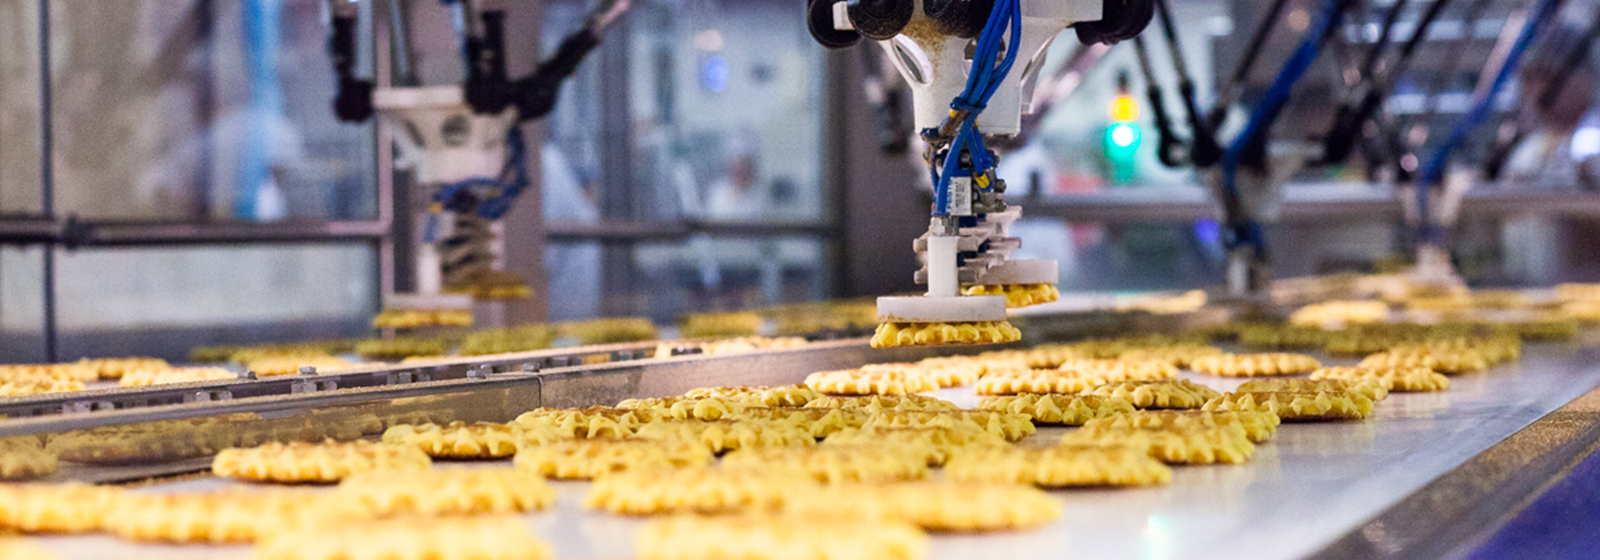 Close up of waffles on conveyor